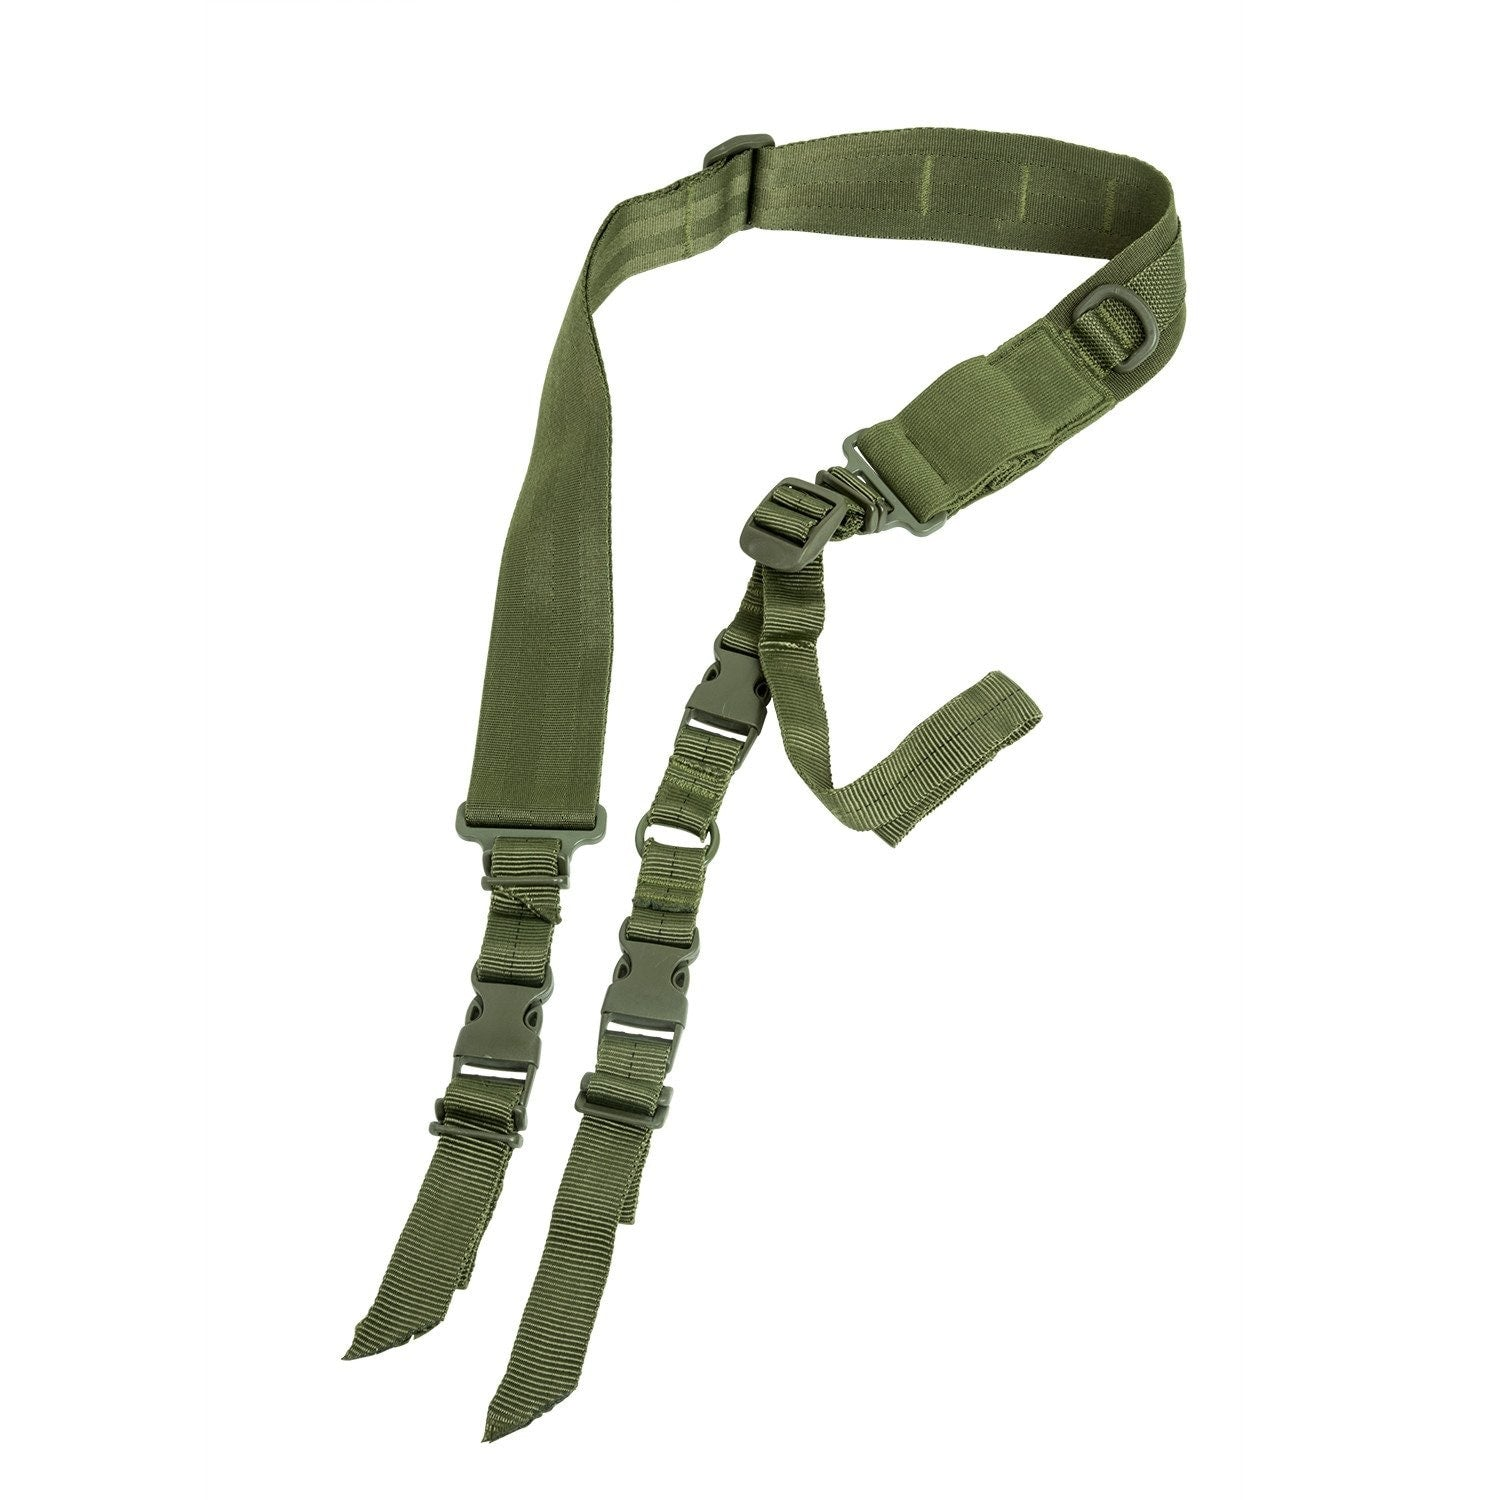 2 Point Tactical Sling - Green - Slings - Vism - Colonel Mustard